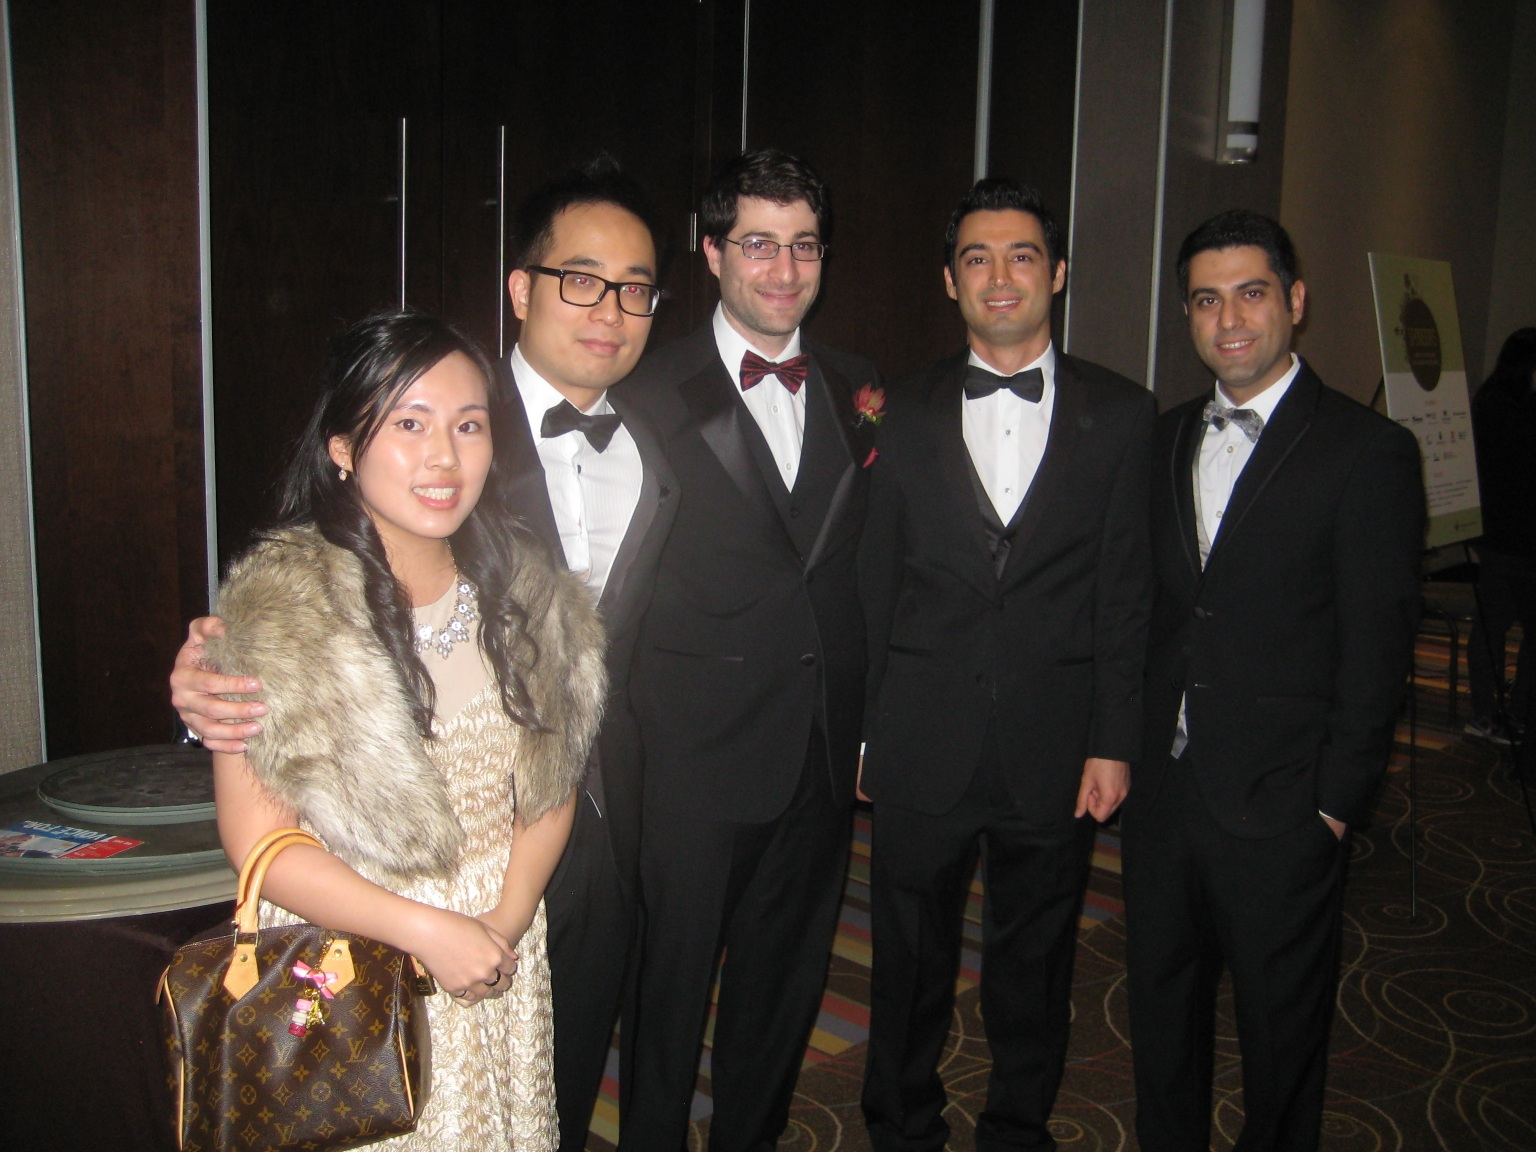 The Dworkin group at the 2015 PEO awards gala, from left to right: Emily Law, Hiep Nguyen, Prof. Seth Dworkin, Ali Khosousi, Meysam Sahafzadeh